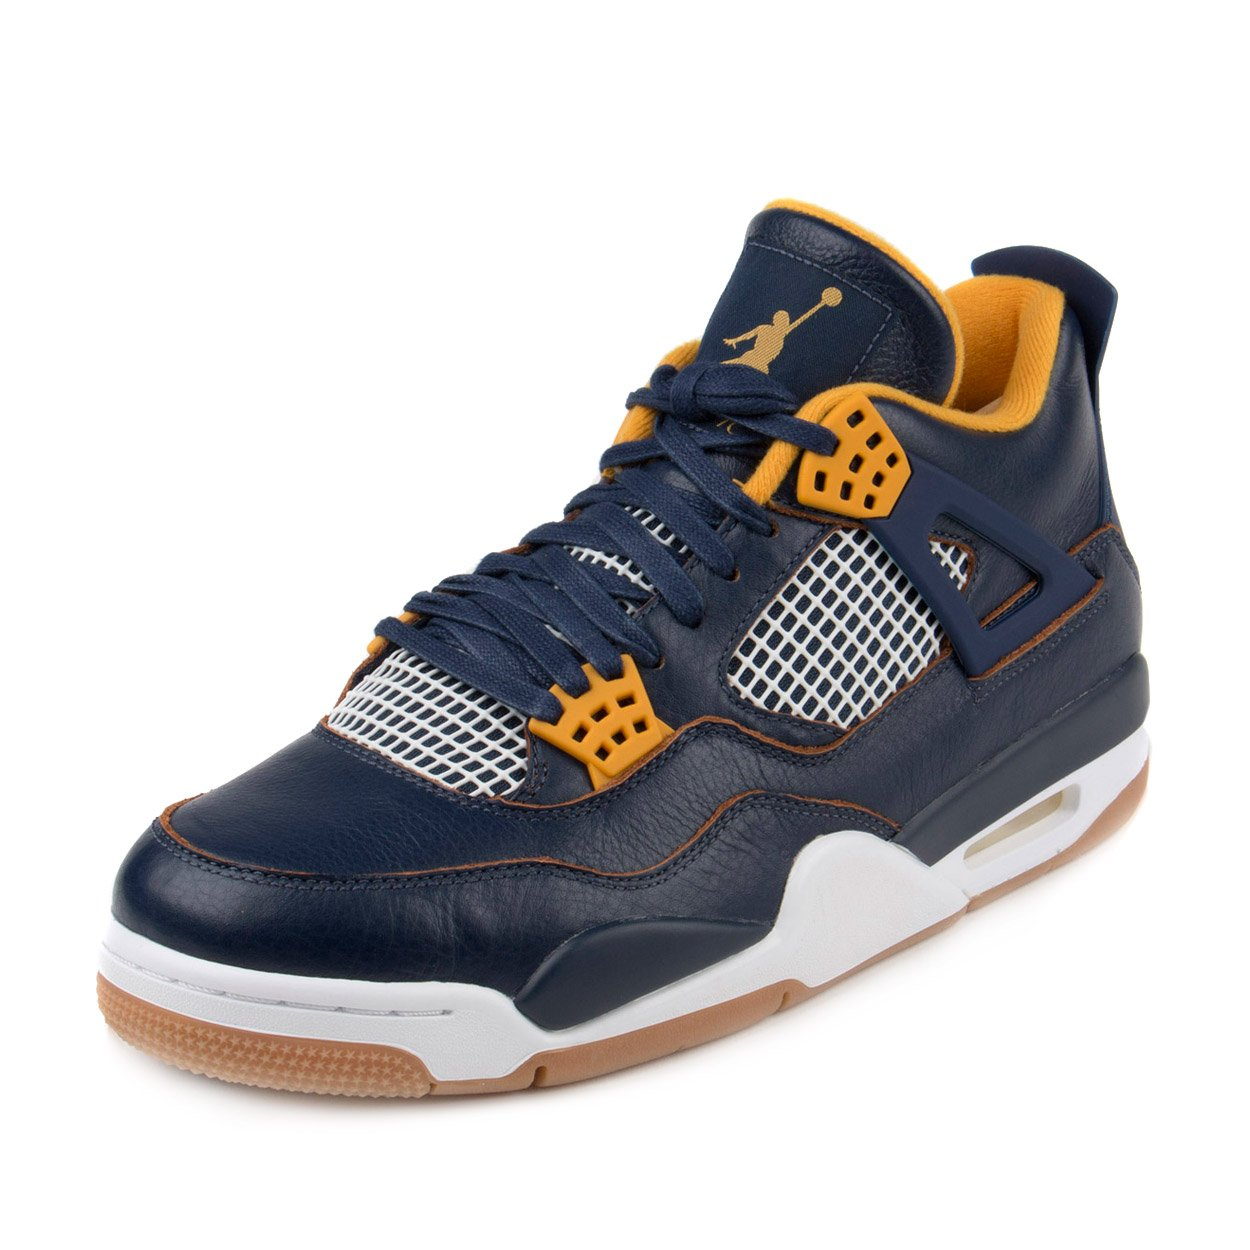 Jordan Men's Air 4 Retro, DUNK FROM ABOVE-MID NAVY/METALLIC GOLD-GOLD LF-WHITE, 9.5 M US by Jordan